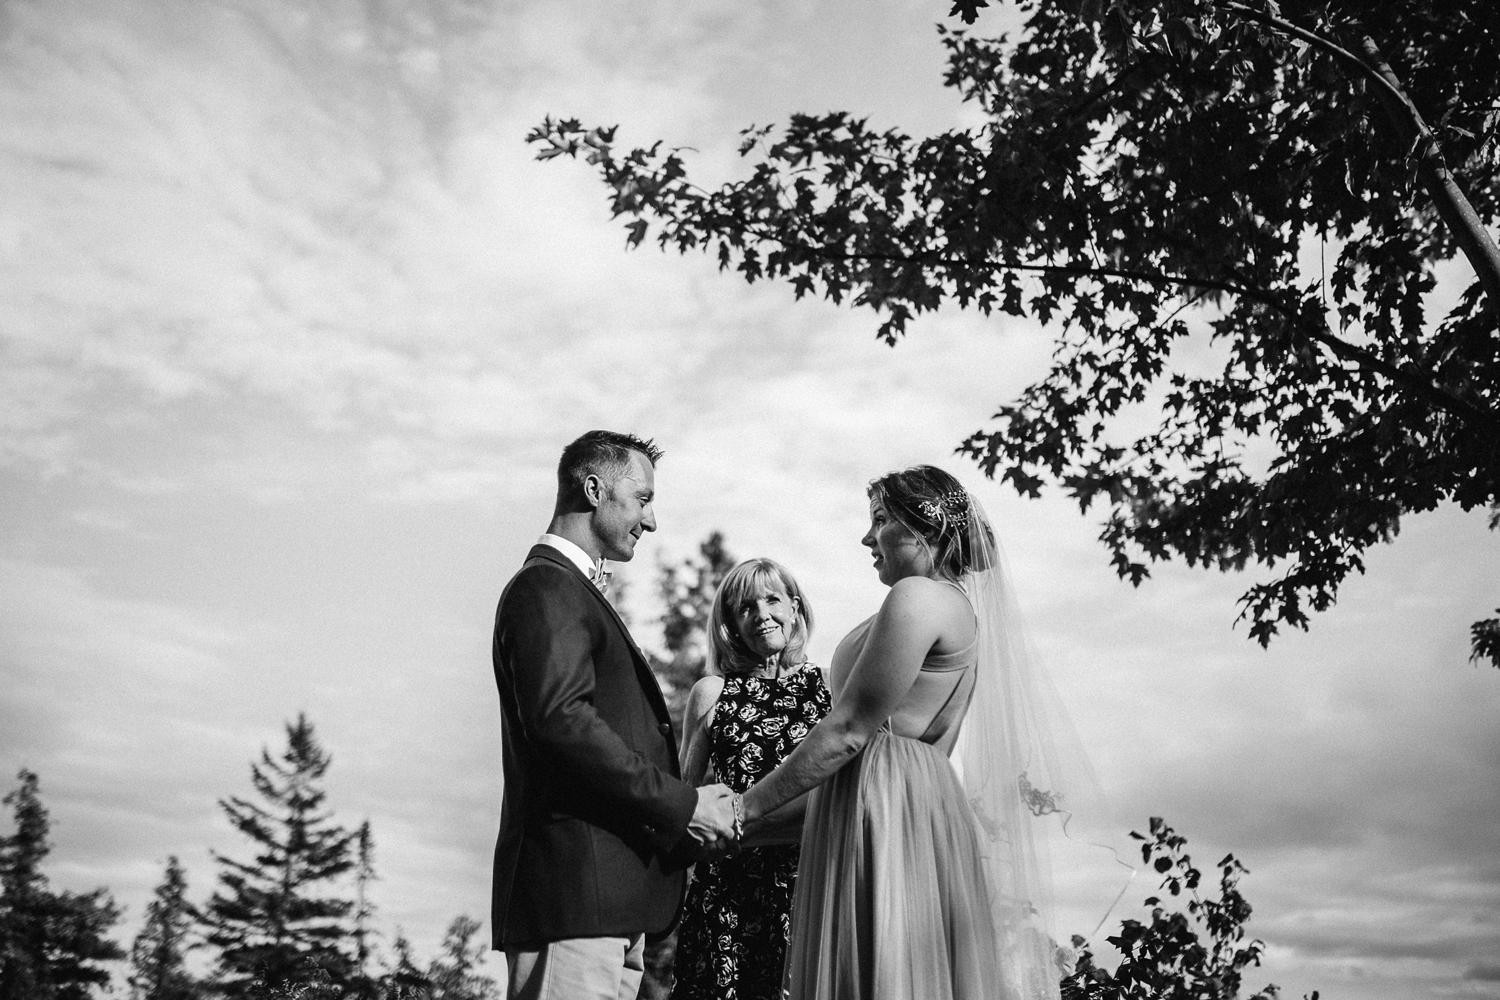 kerry ford photography - small intimate backyard rideau lake island wedding perth ontario-056.jpg